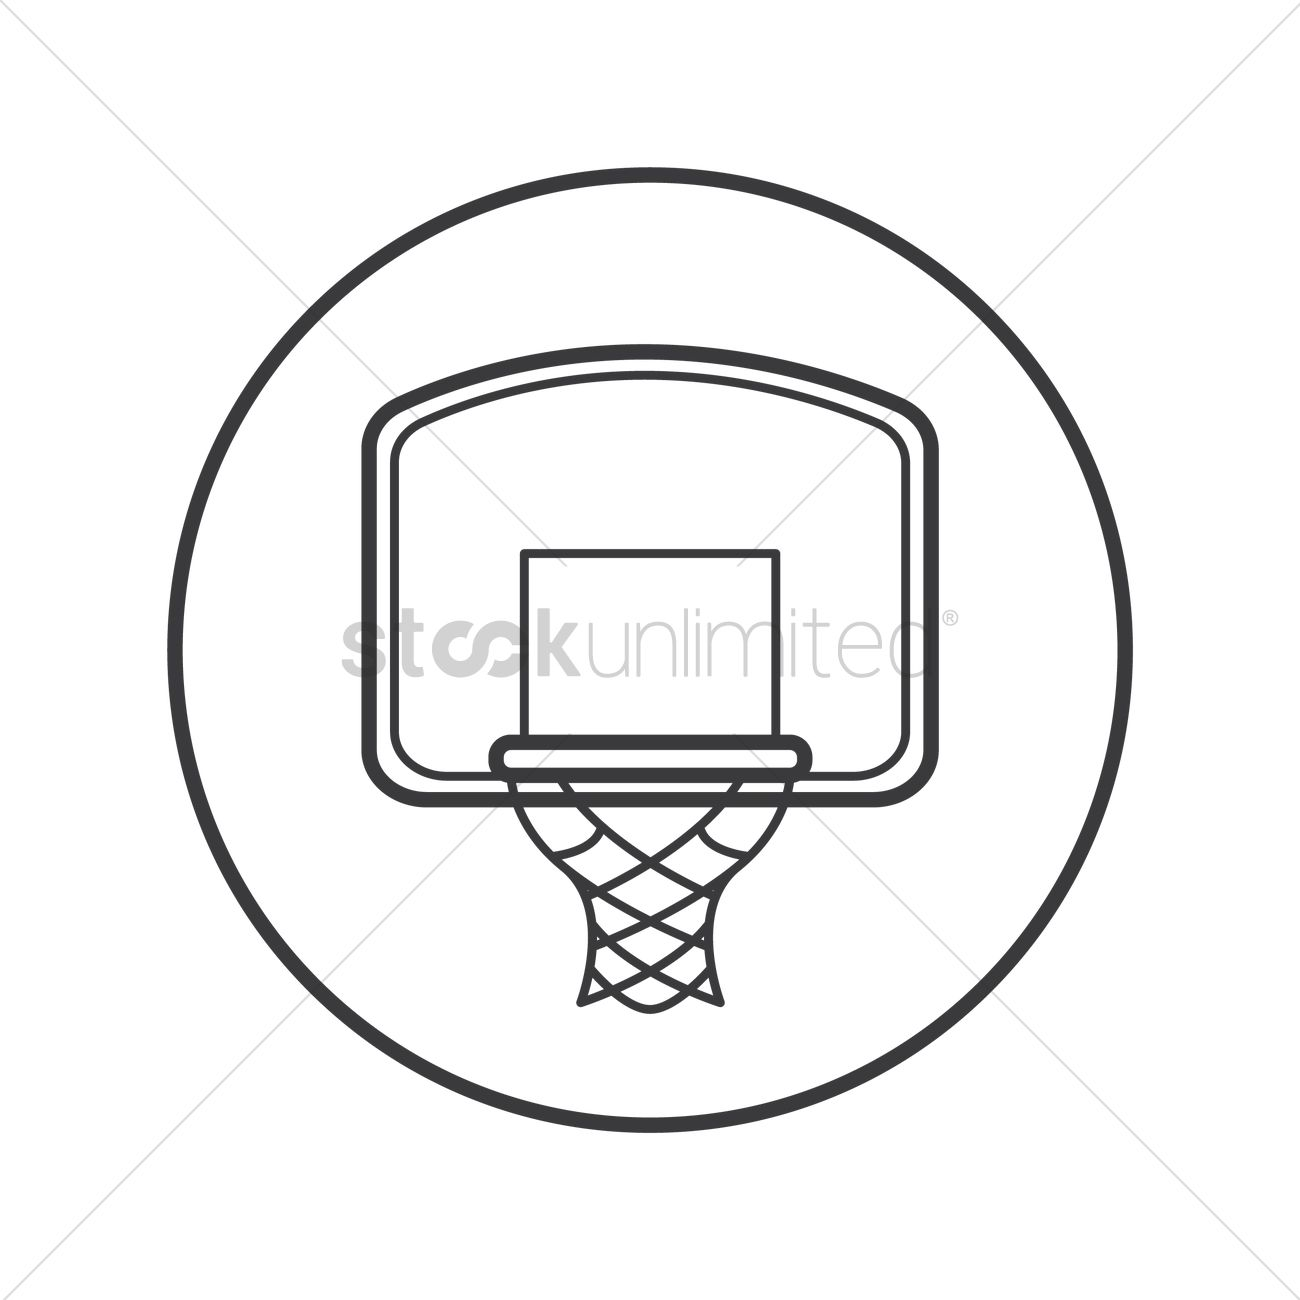 Free Basketball hoop Vector Image - 1490367 | StockUnlimited